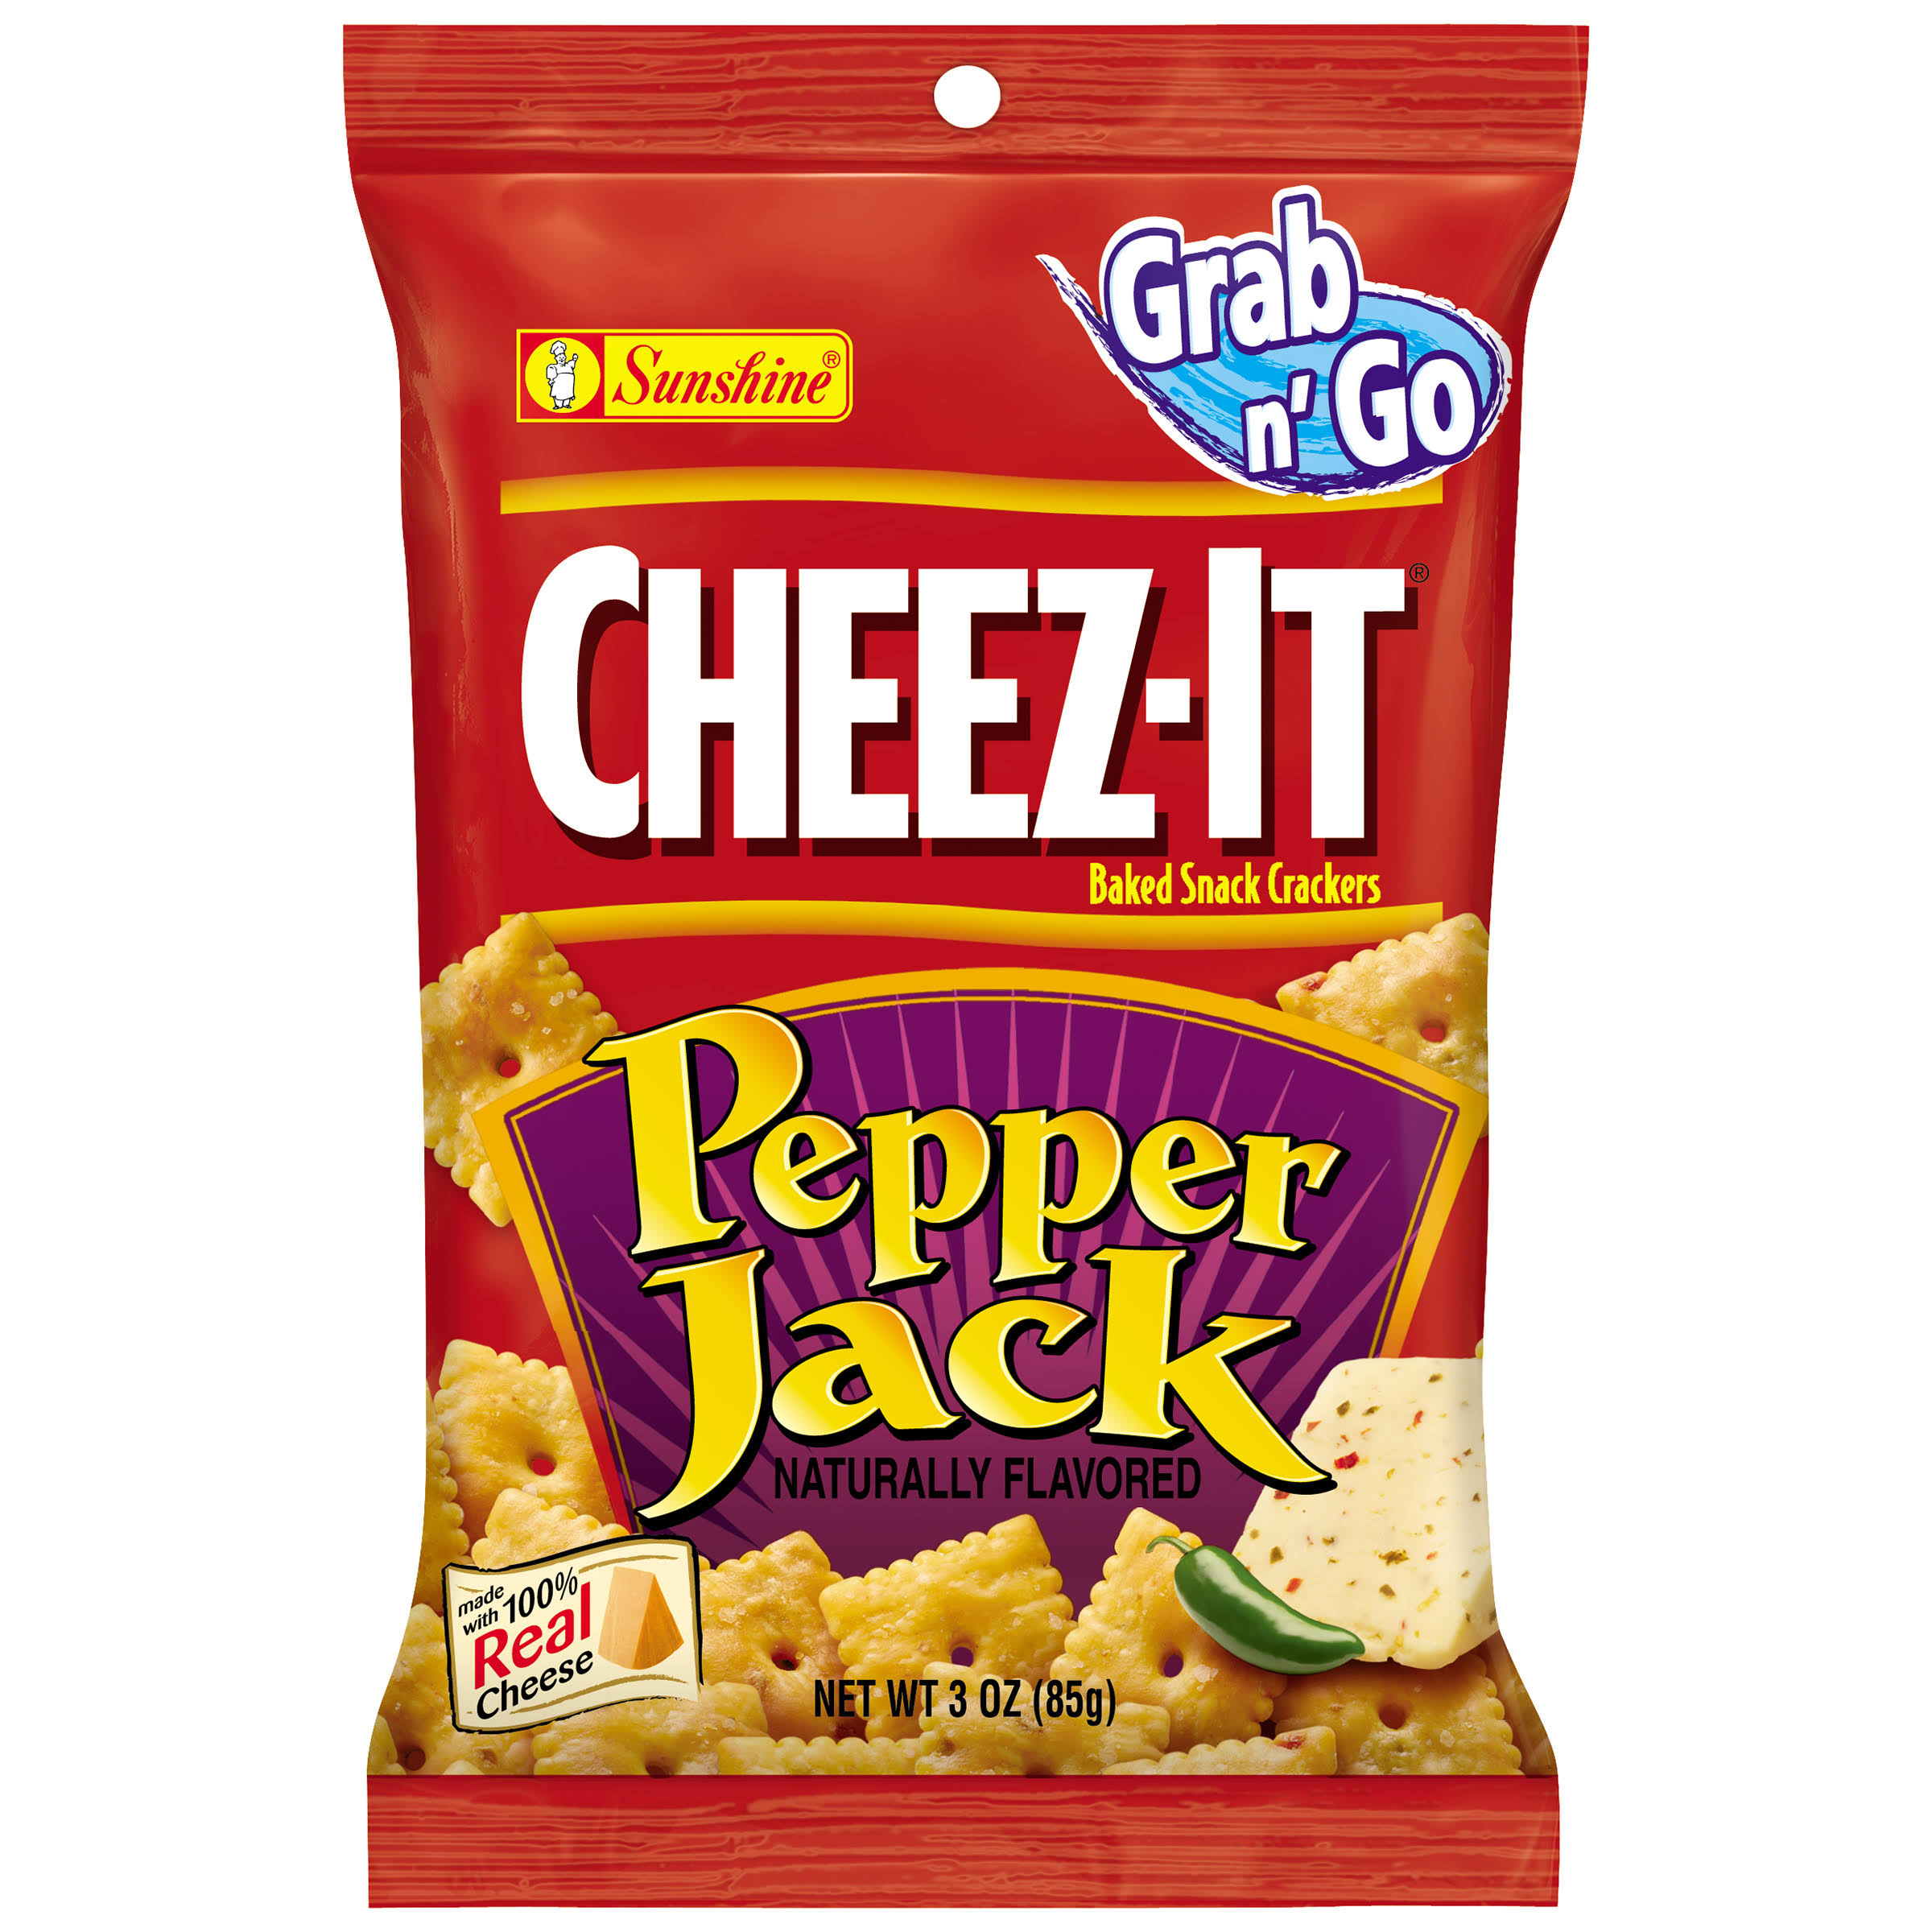 Cheez-It Grab n' Go Pepper Jack Baked Snack Crackers